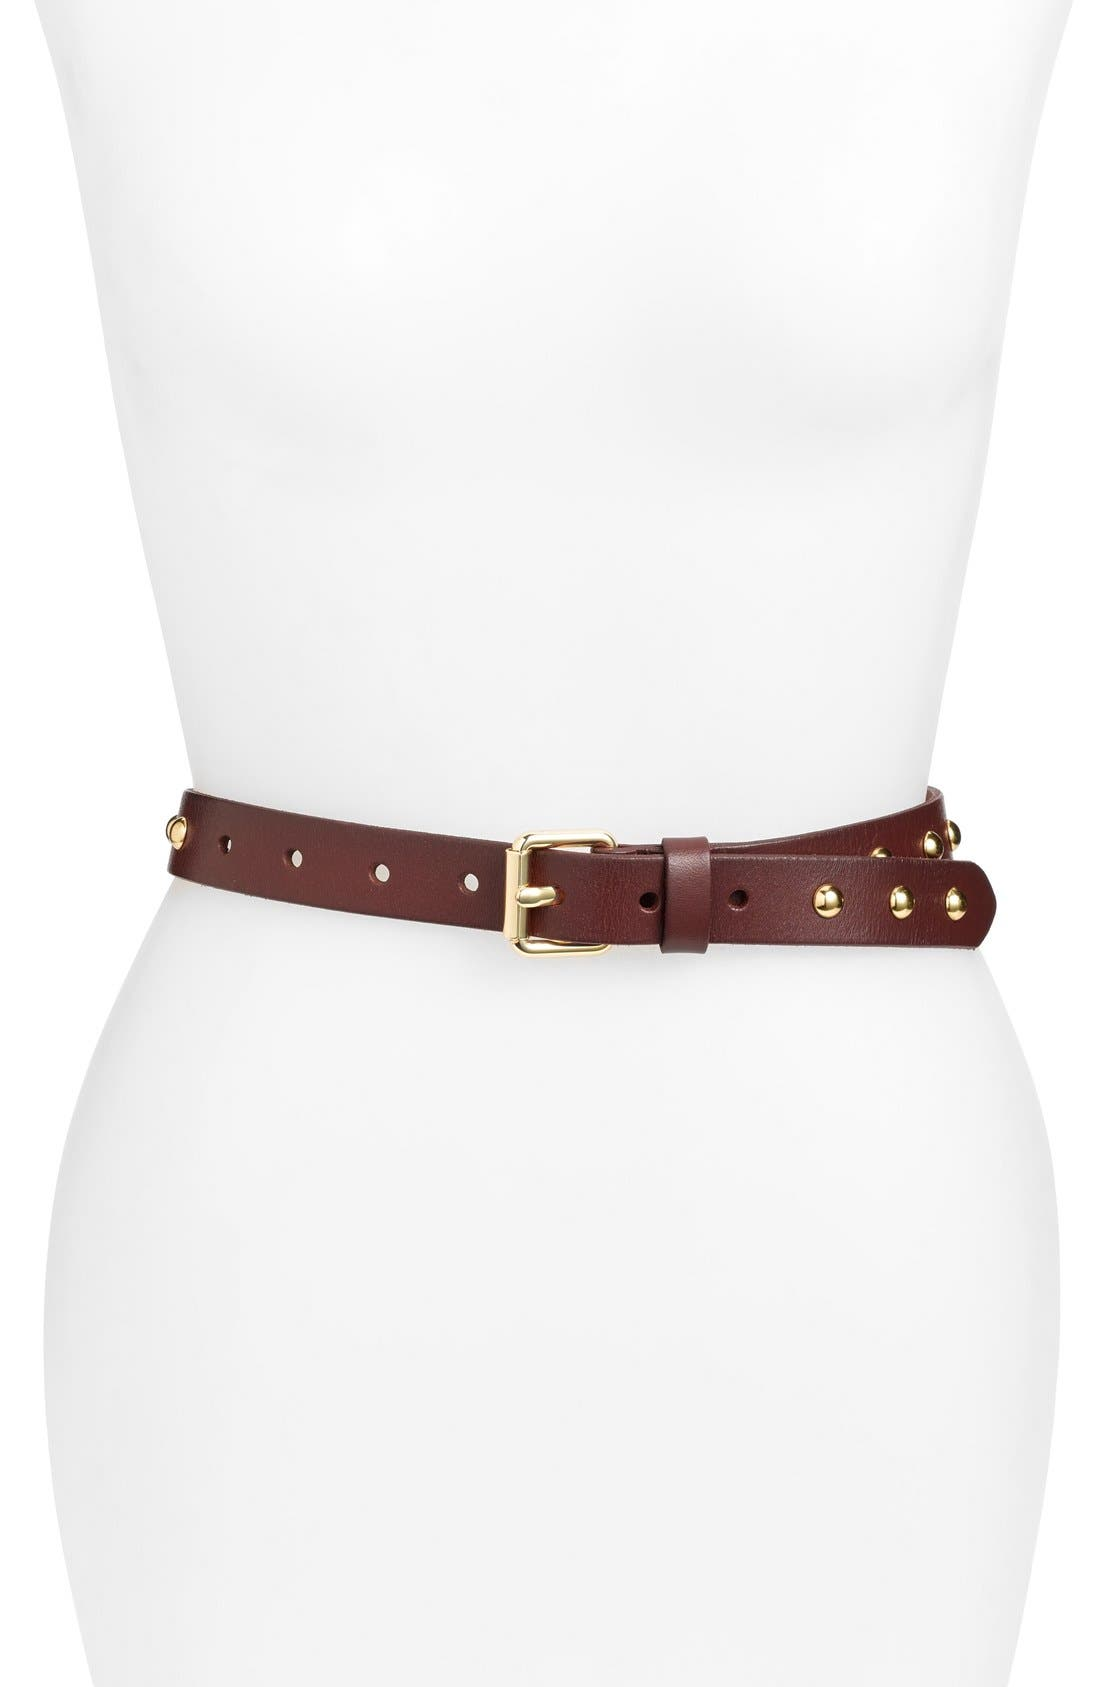 Rebecca Minkoff 'Jane' Leather Belt